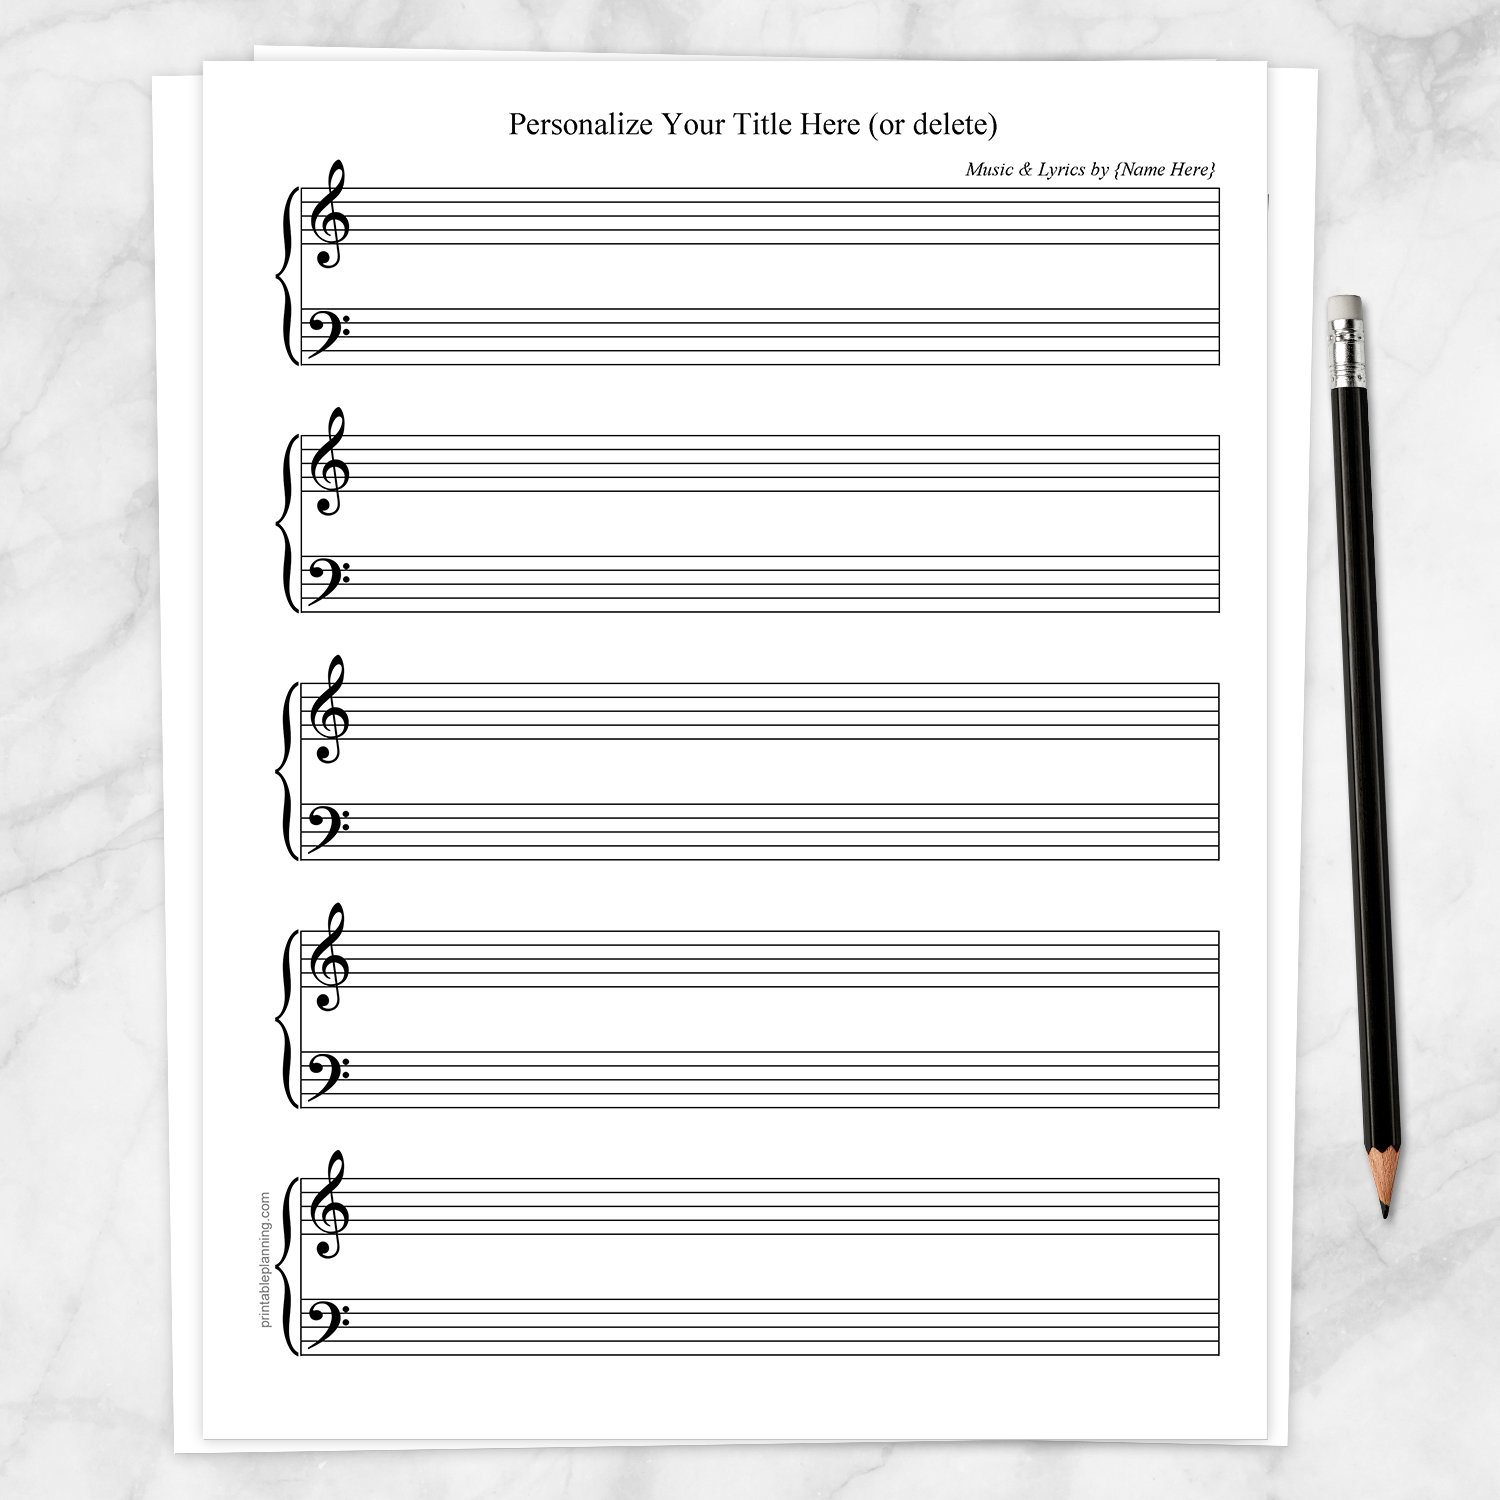 Printable Personalized Blank Piano and Vocals Sheet Music at Printable Planning